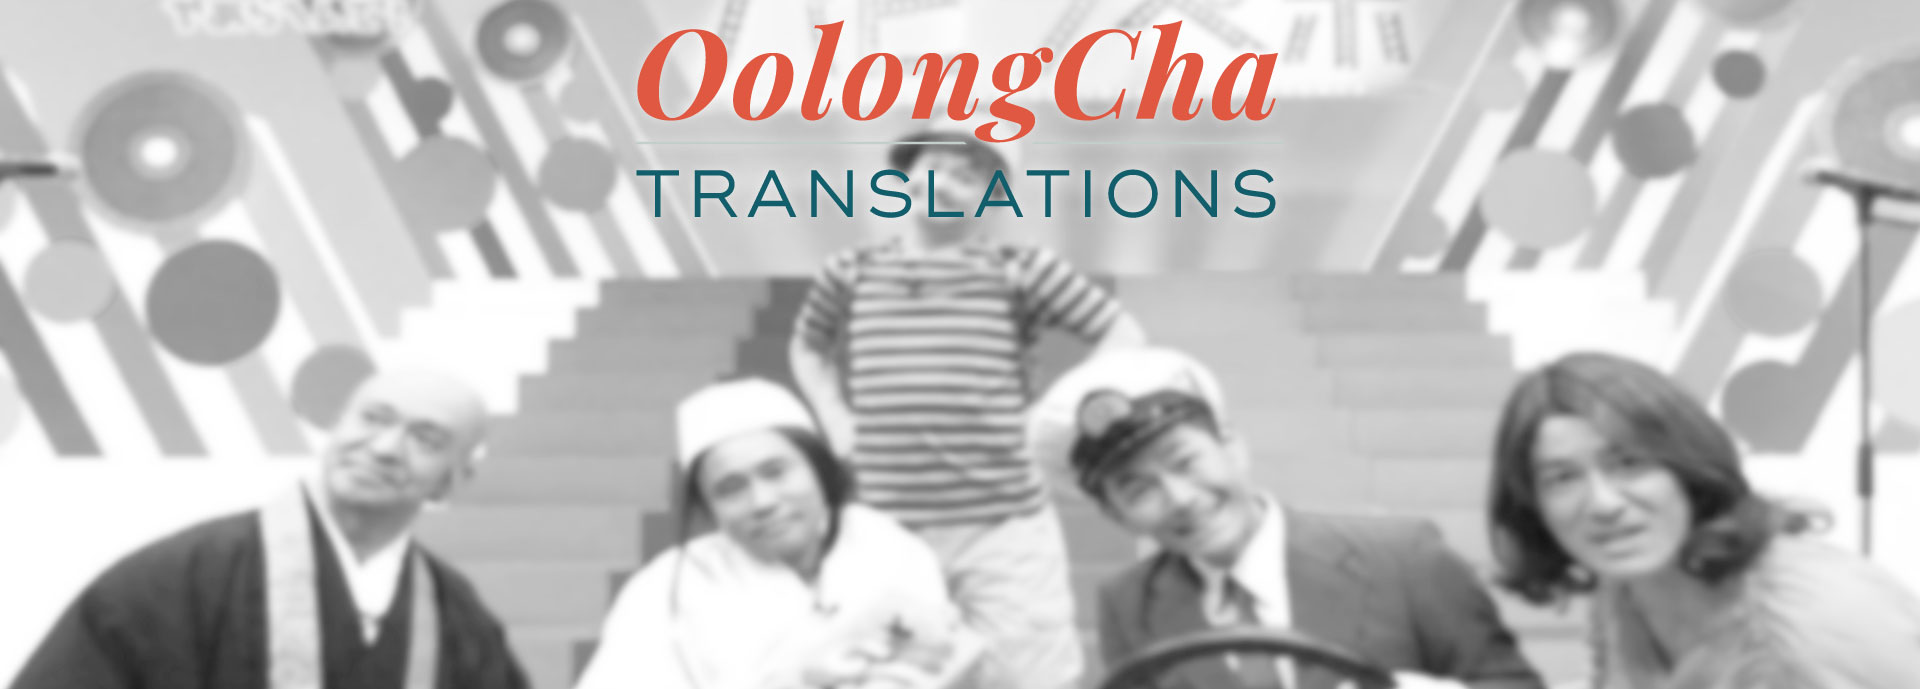 OolongCha Translations